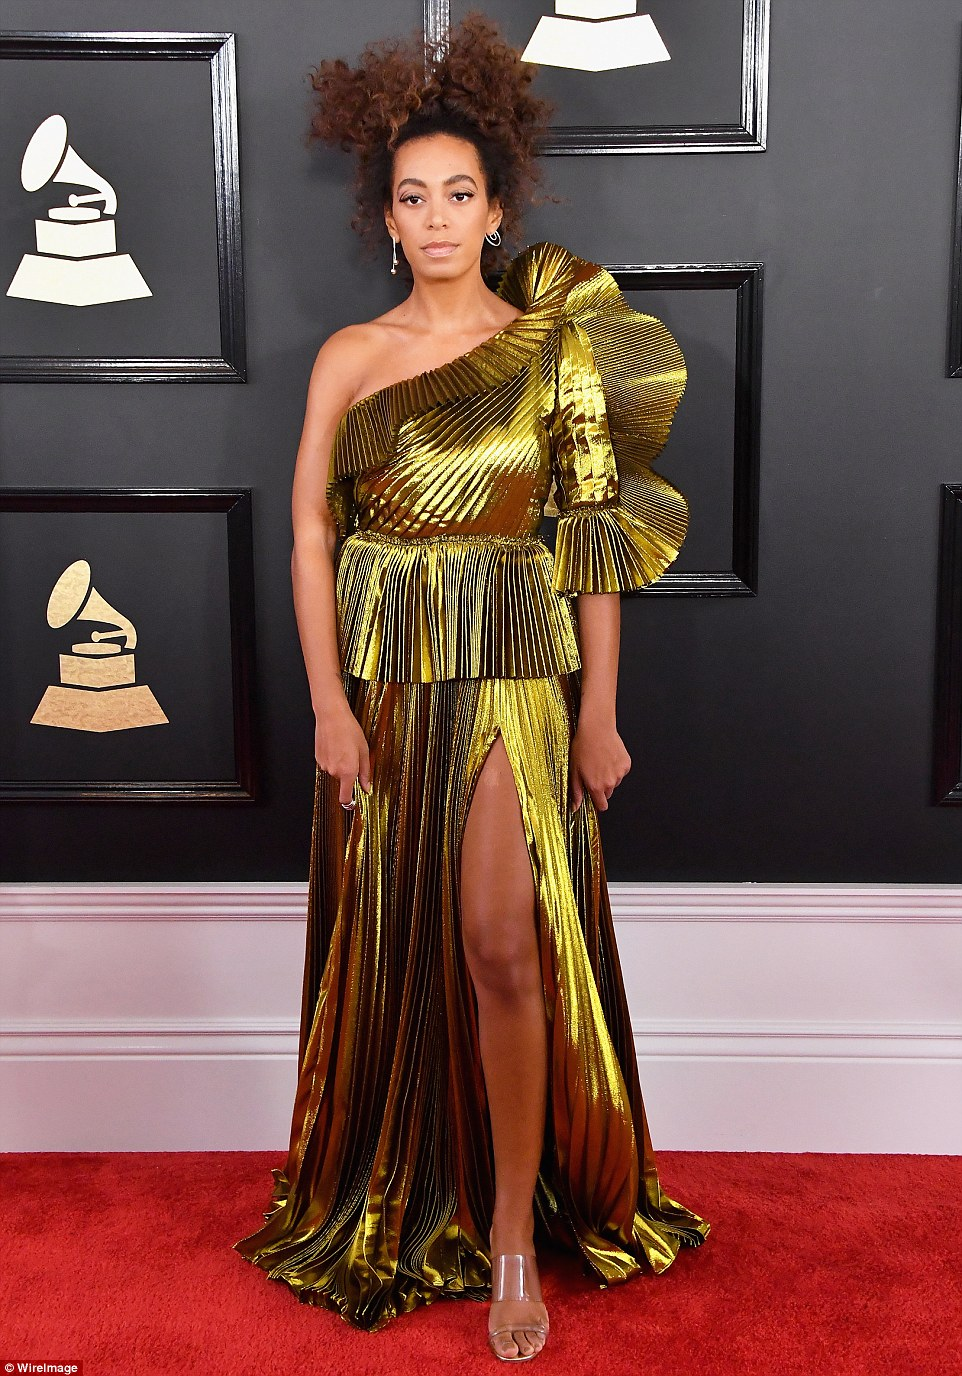 Precious metal: Solange Knowles arrived in a gold crinkled gown with leg slit